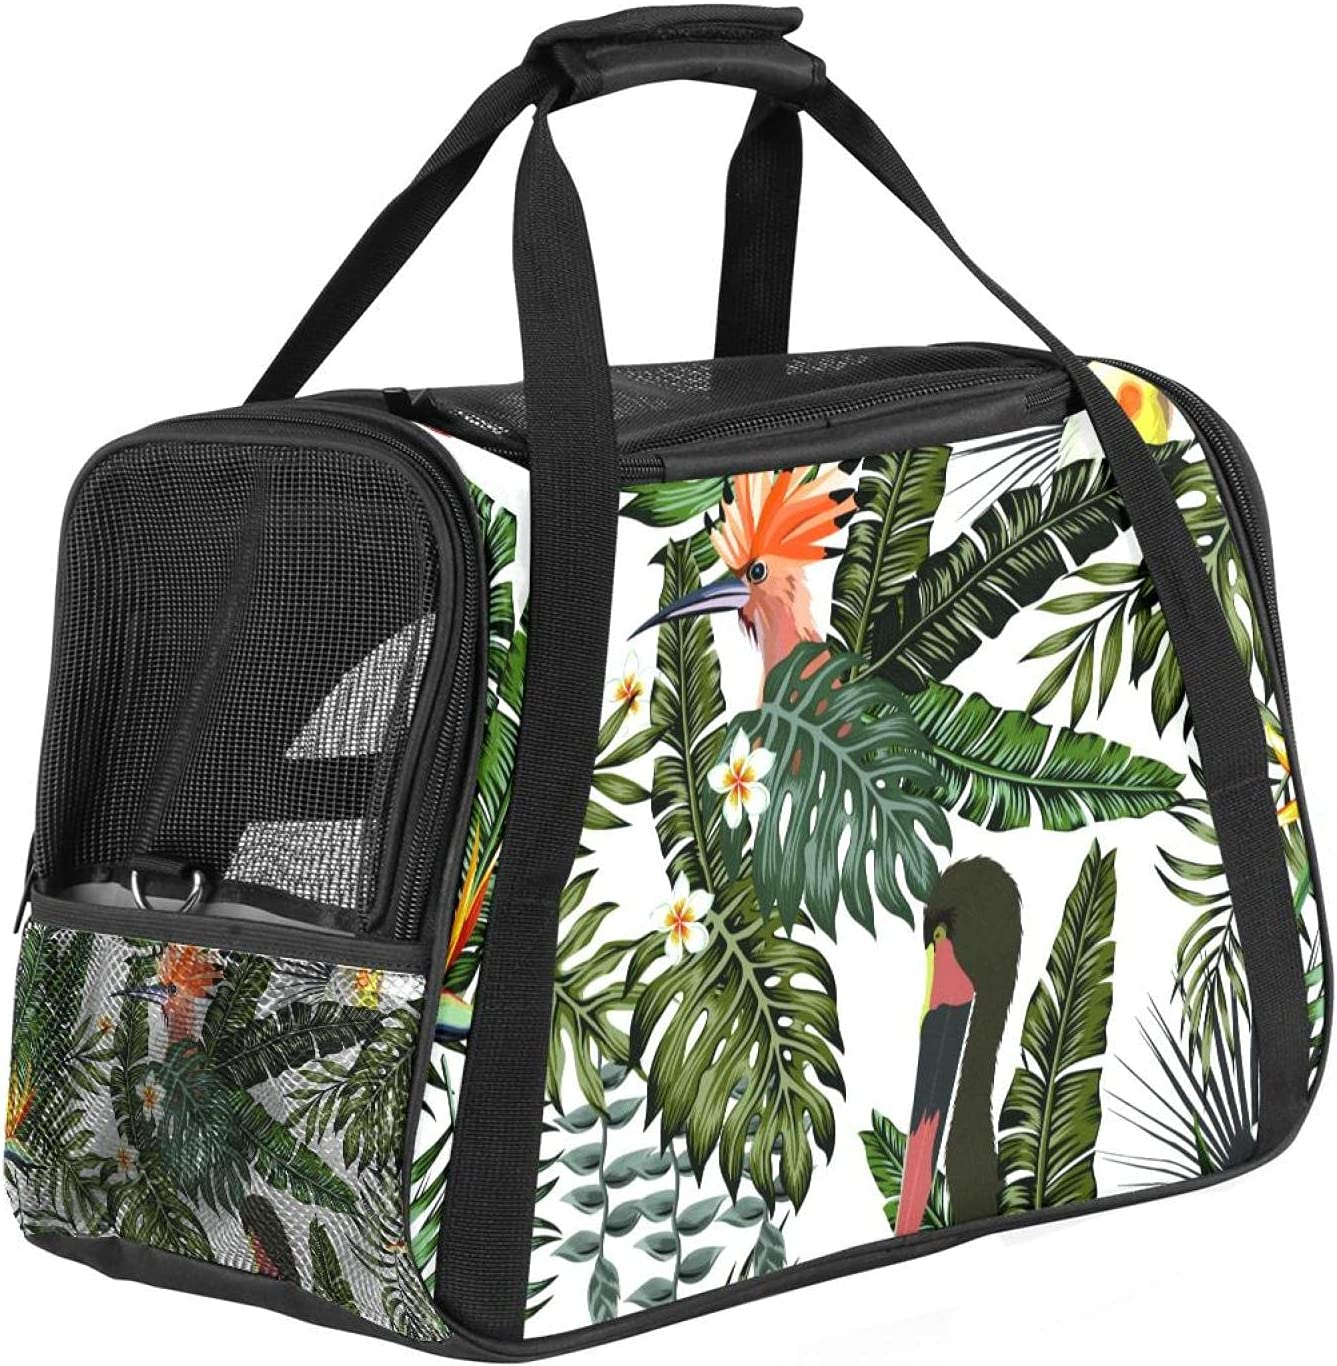 Airline Approved Max 88% OFF Pet Purchase Carriers Soft Sided Travel Collapsible